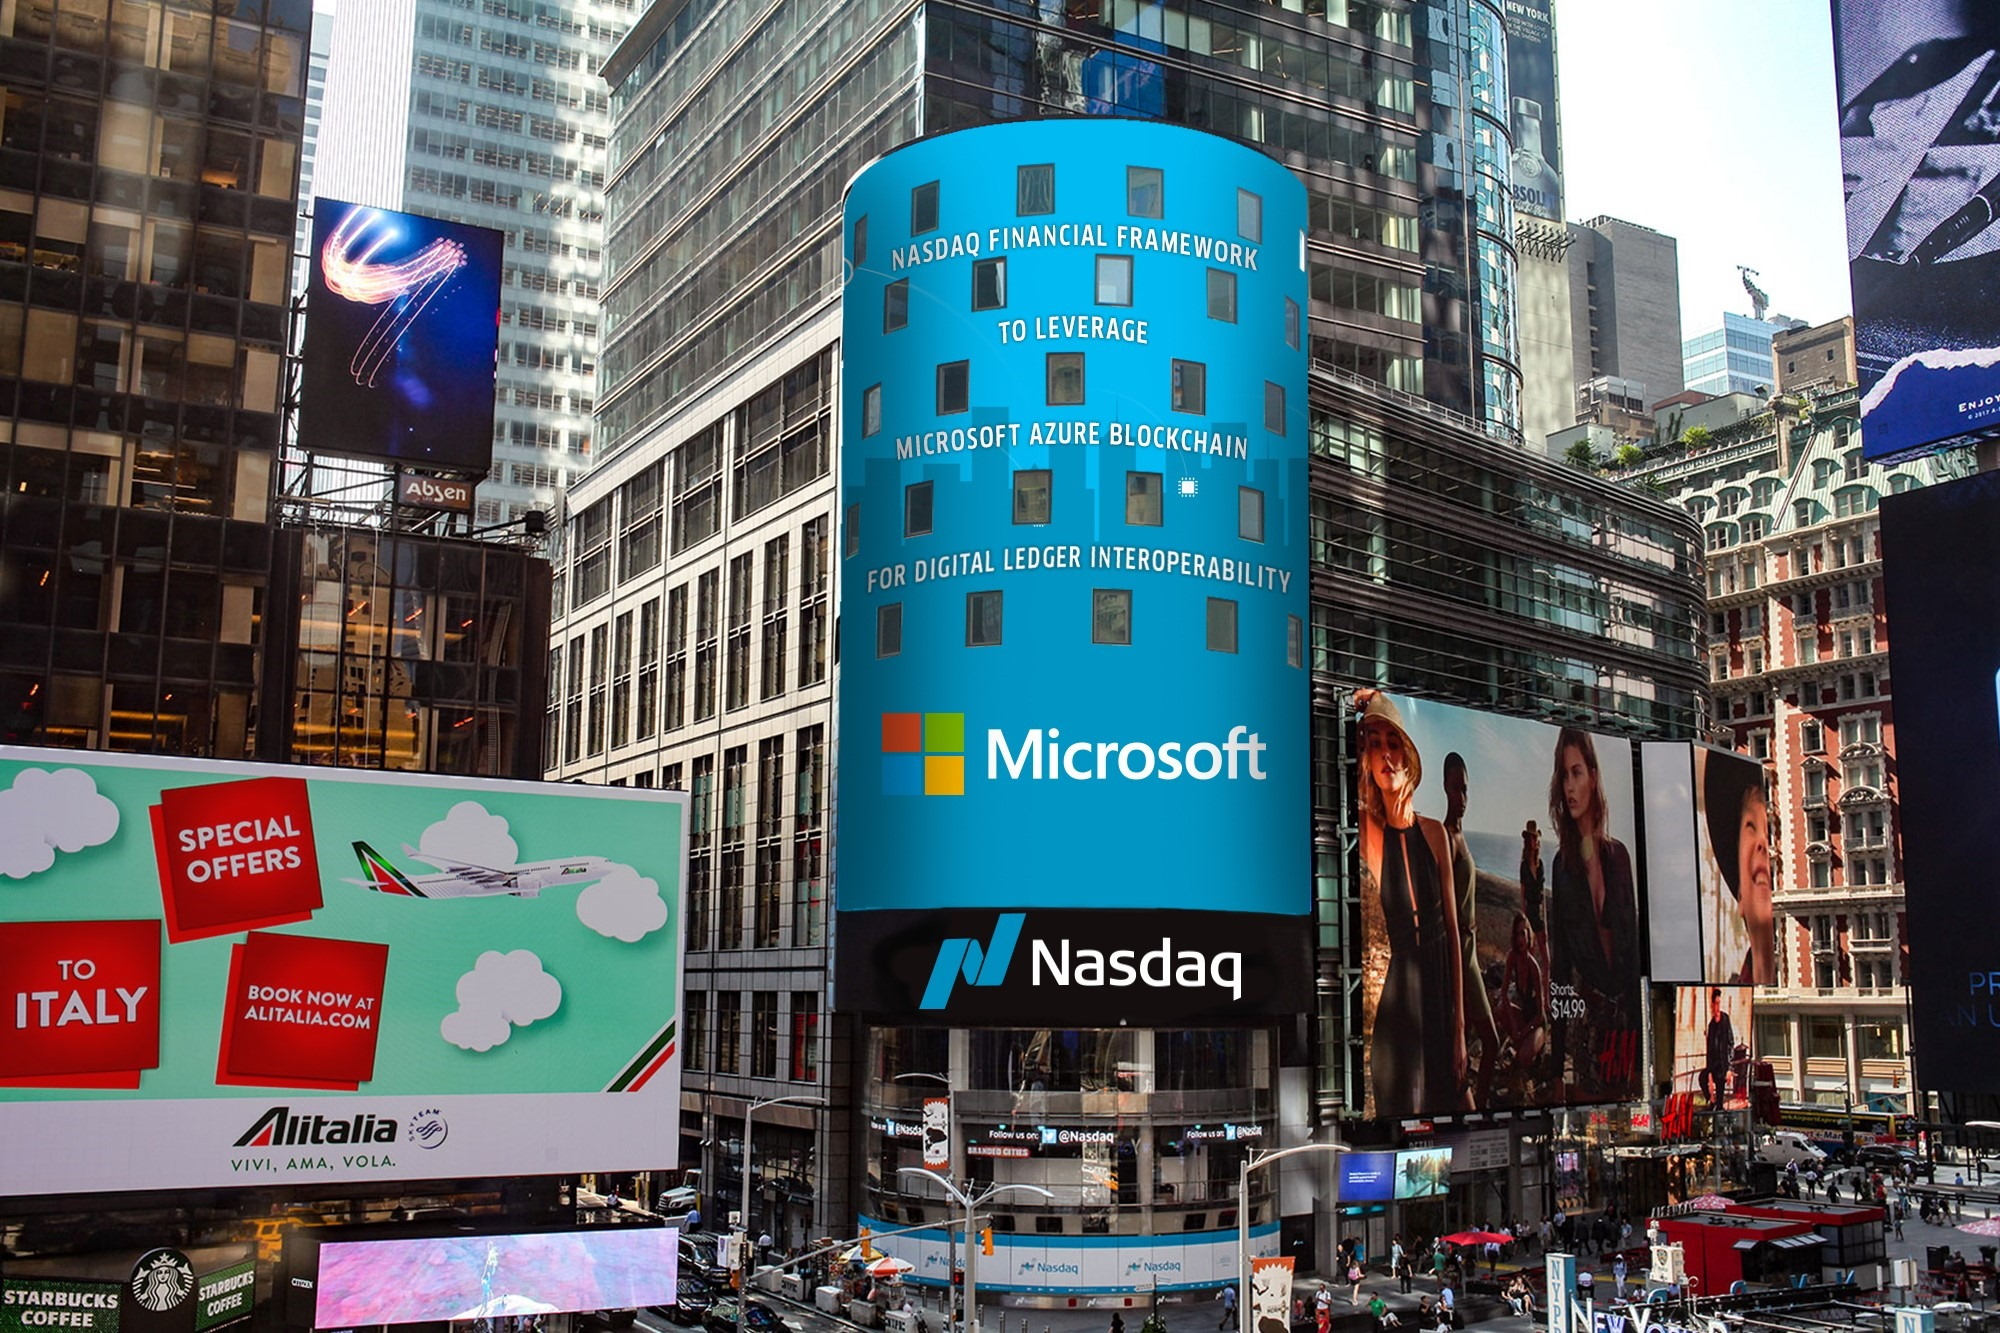 Photograph in Times Square showing the Microsoft and NASDAQ logos on a digital billboard